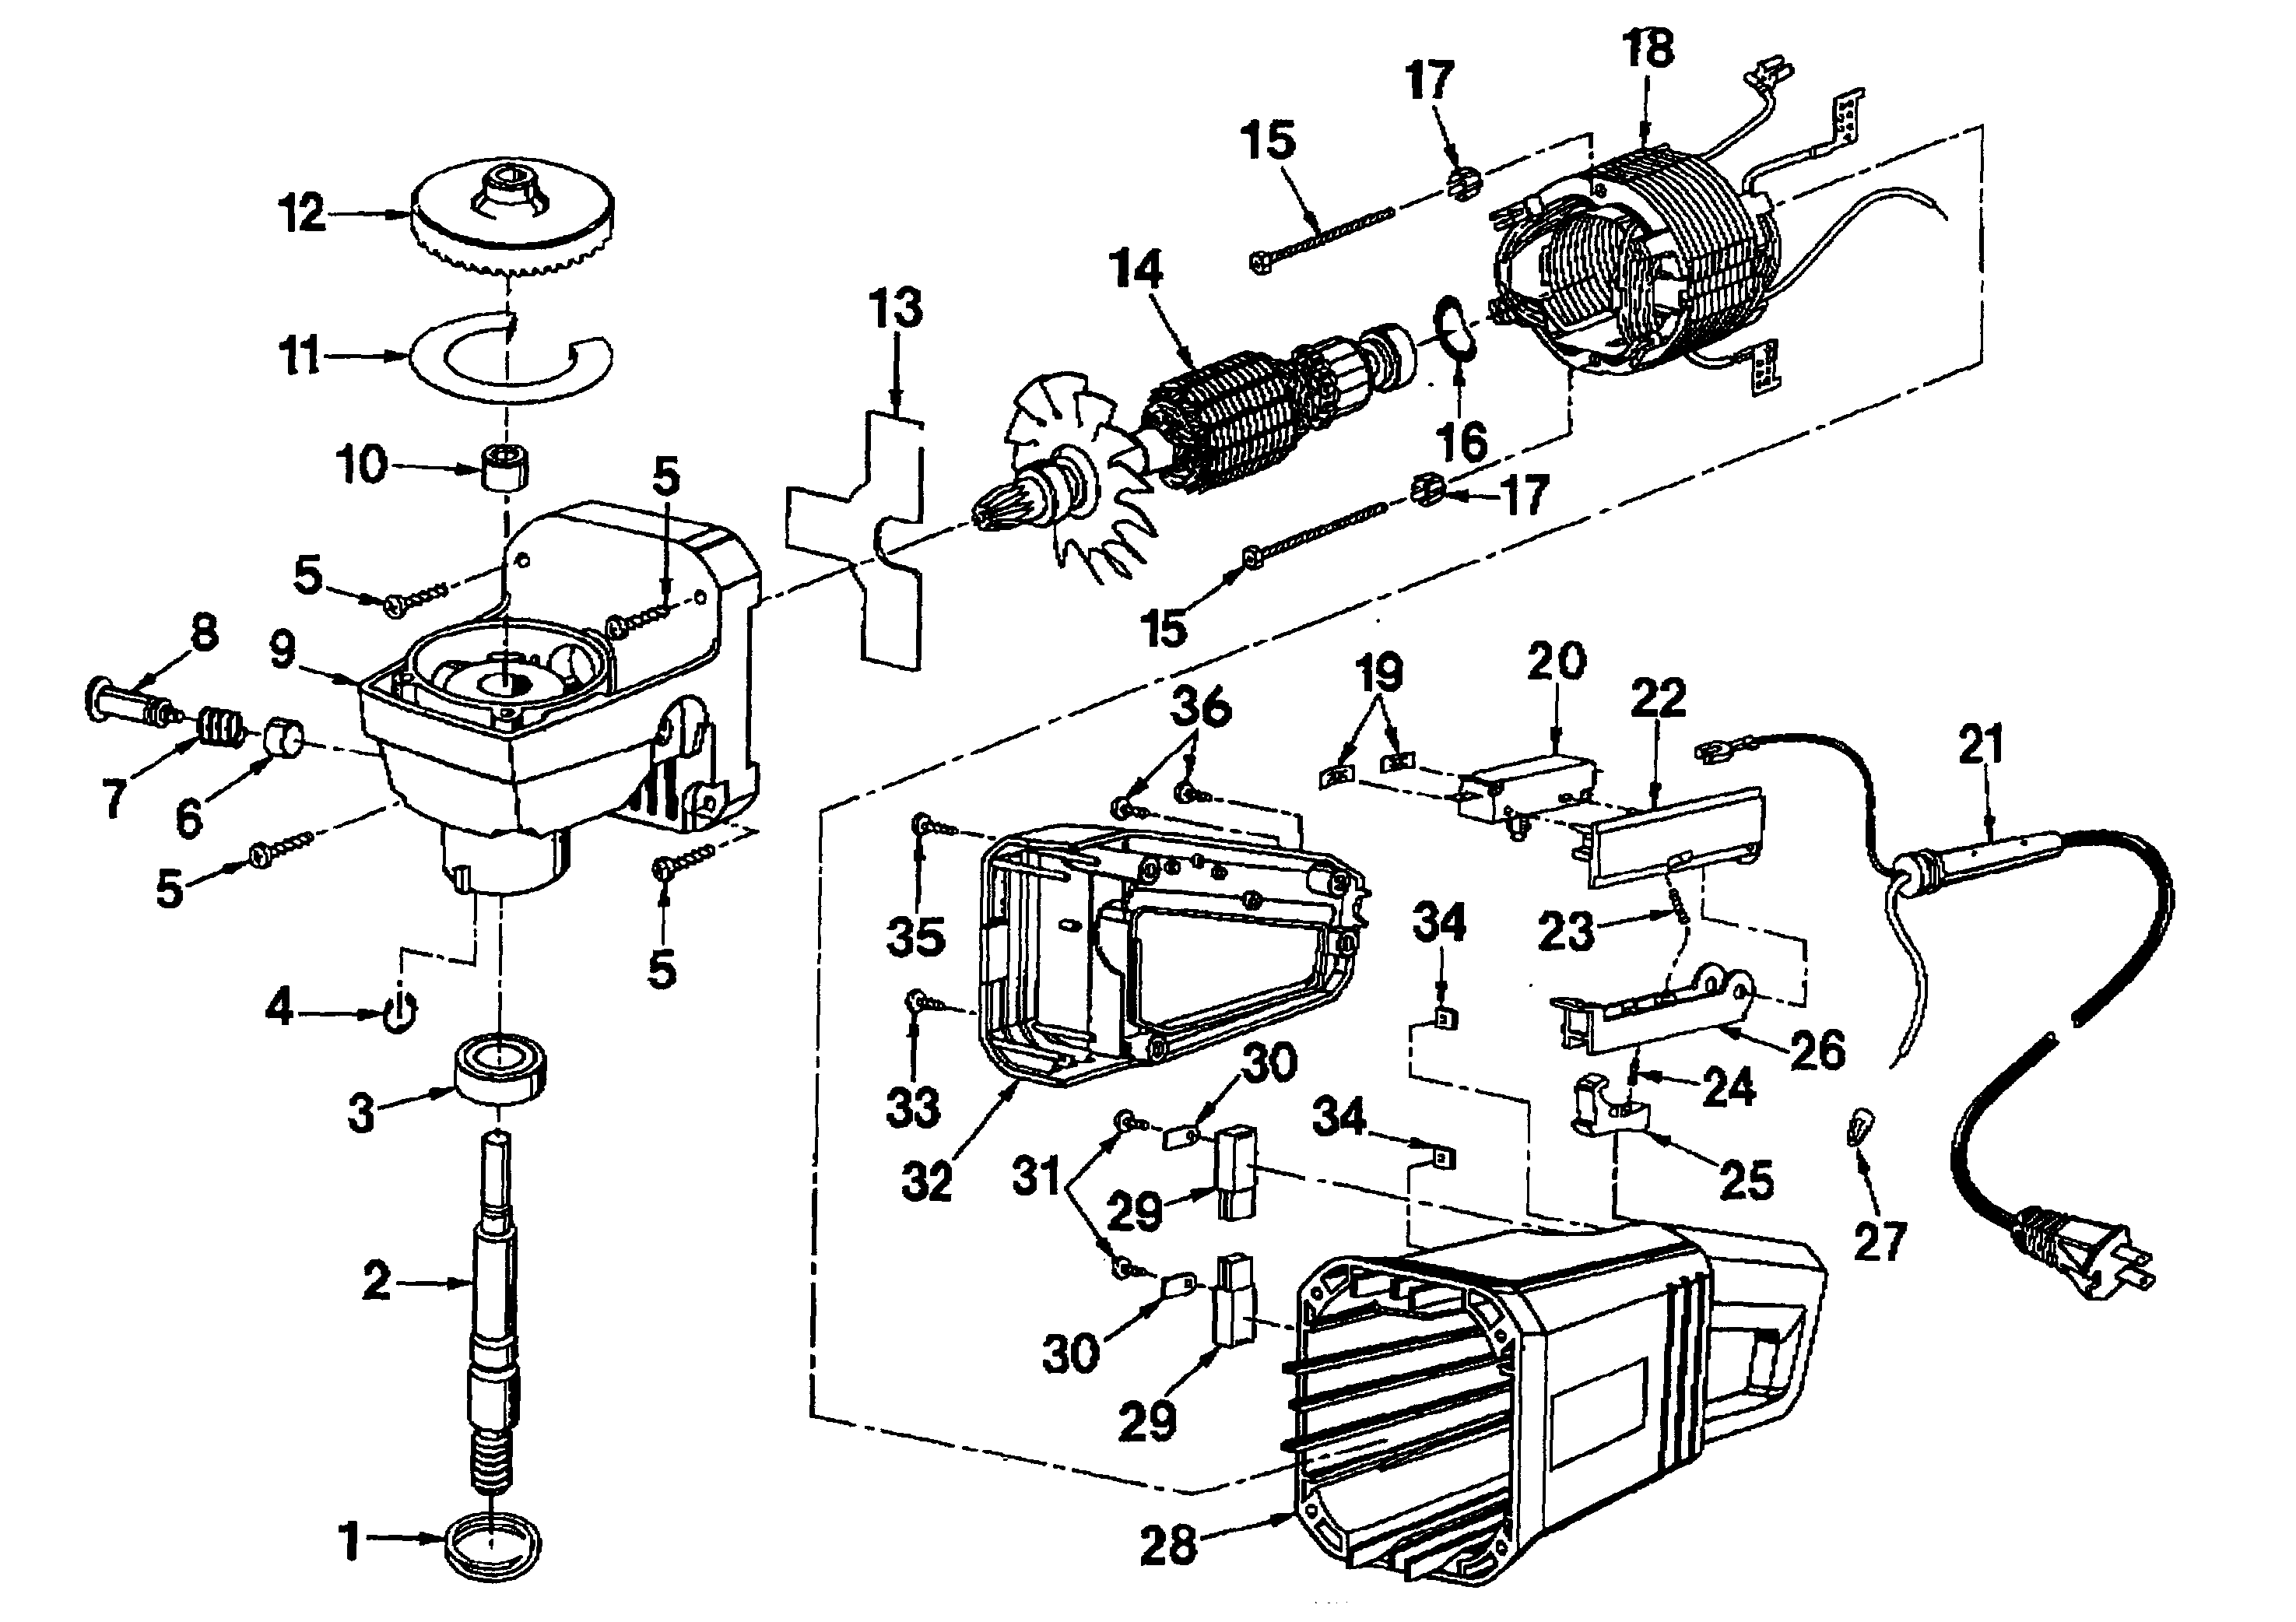 unit diagram and parts list for craftsman hydraulicjackparts model